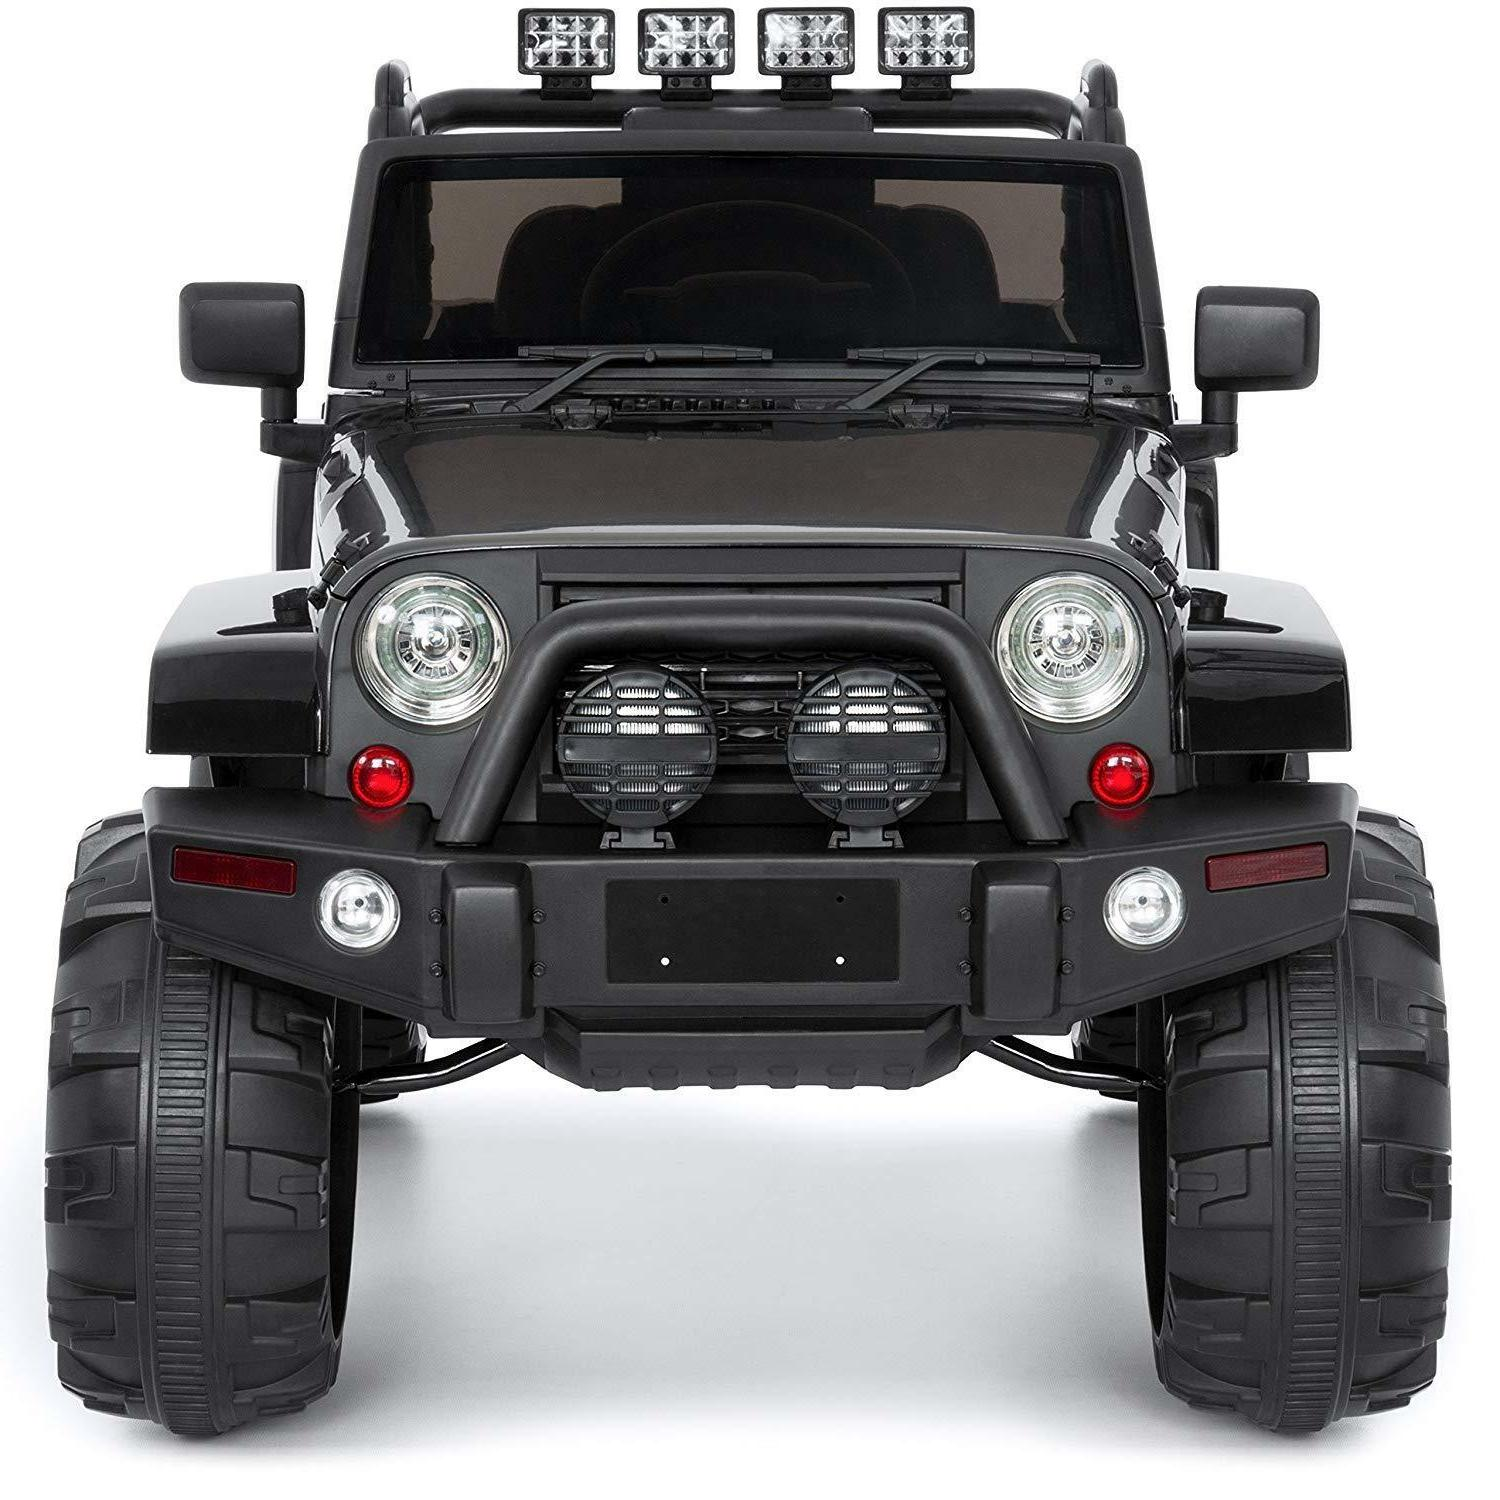 Cars Kids On Truck Jeep Remote Control Boys Black